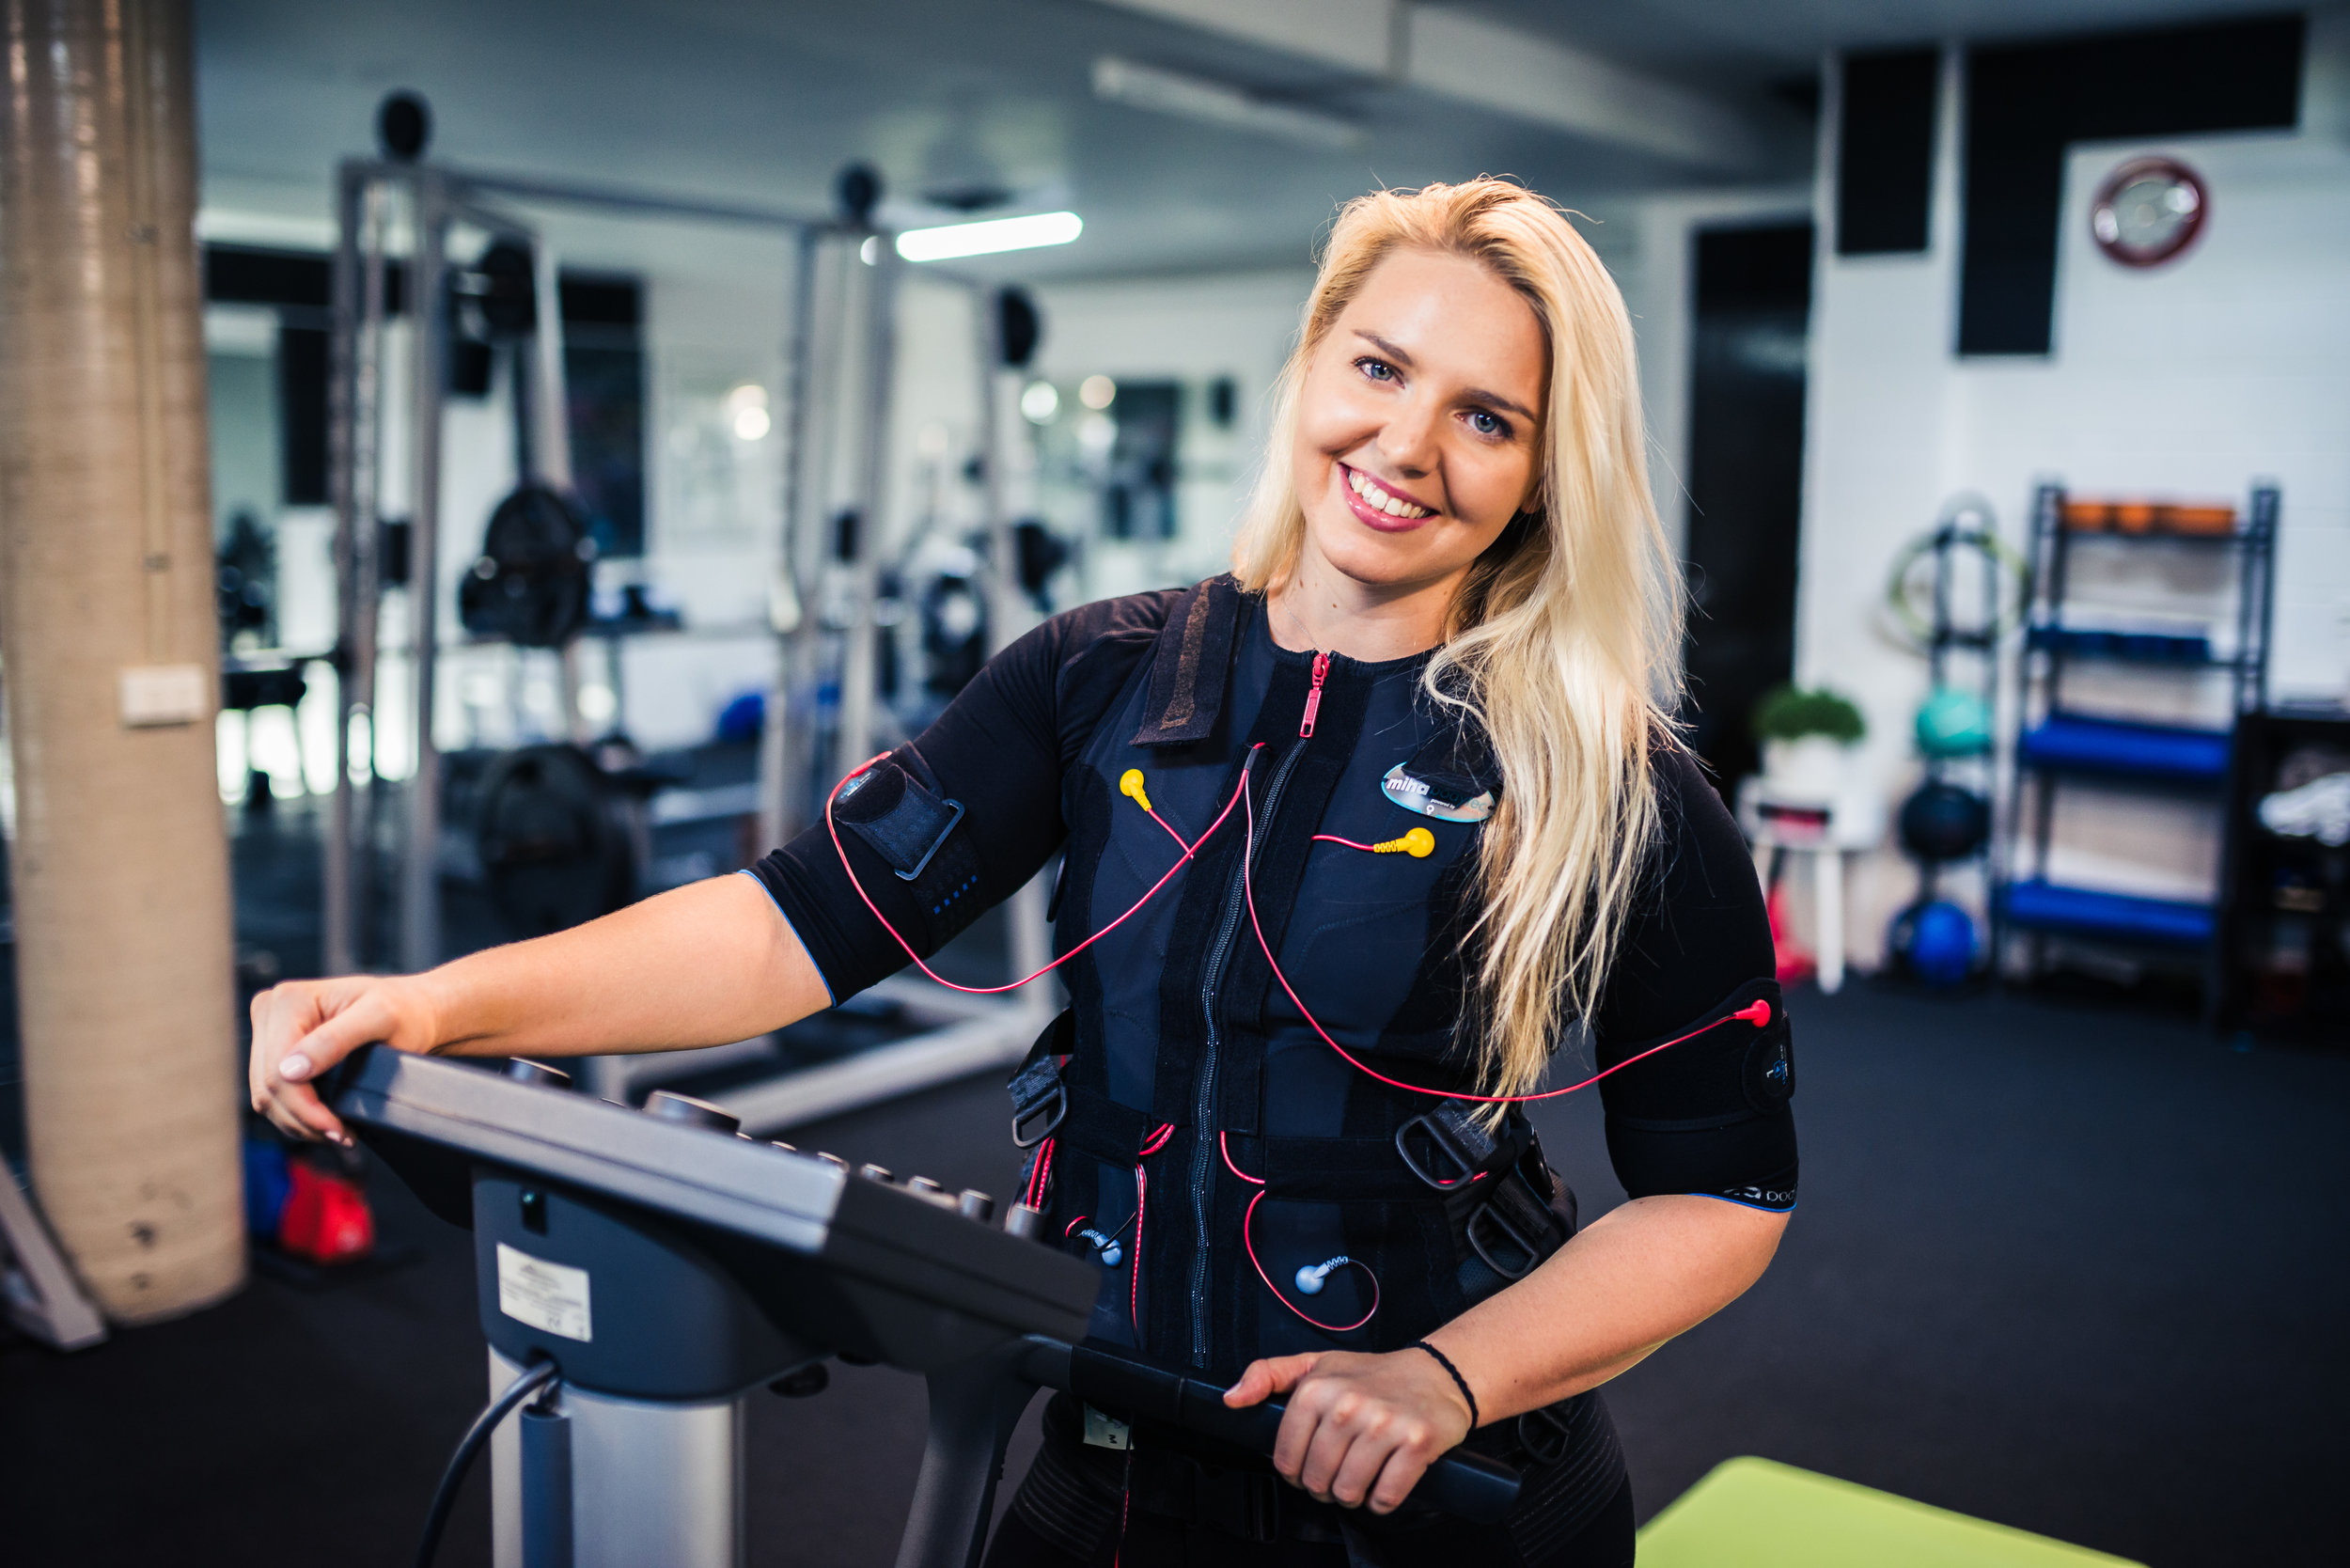 Its calledELECTRO MUSCULAR STIMULATION (EMS)  - EMS uses its own electrical pulses to contract your muscles without you having to put strain on your joints or ligaments to do the work. This is Amazing news for our pelvic floor. The EMS machine automatically strengthens the muscles whilst you pretty much just stand there.